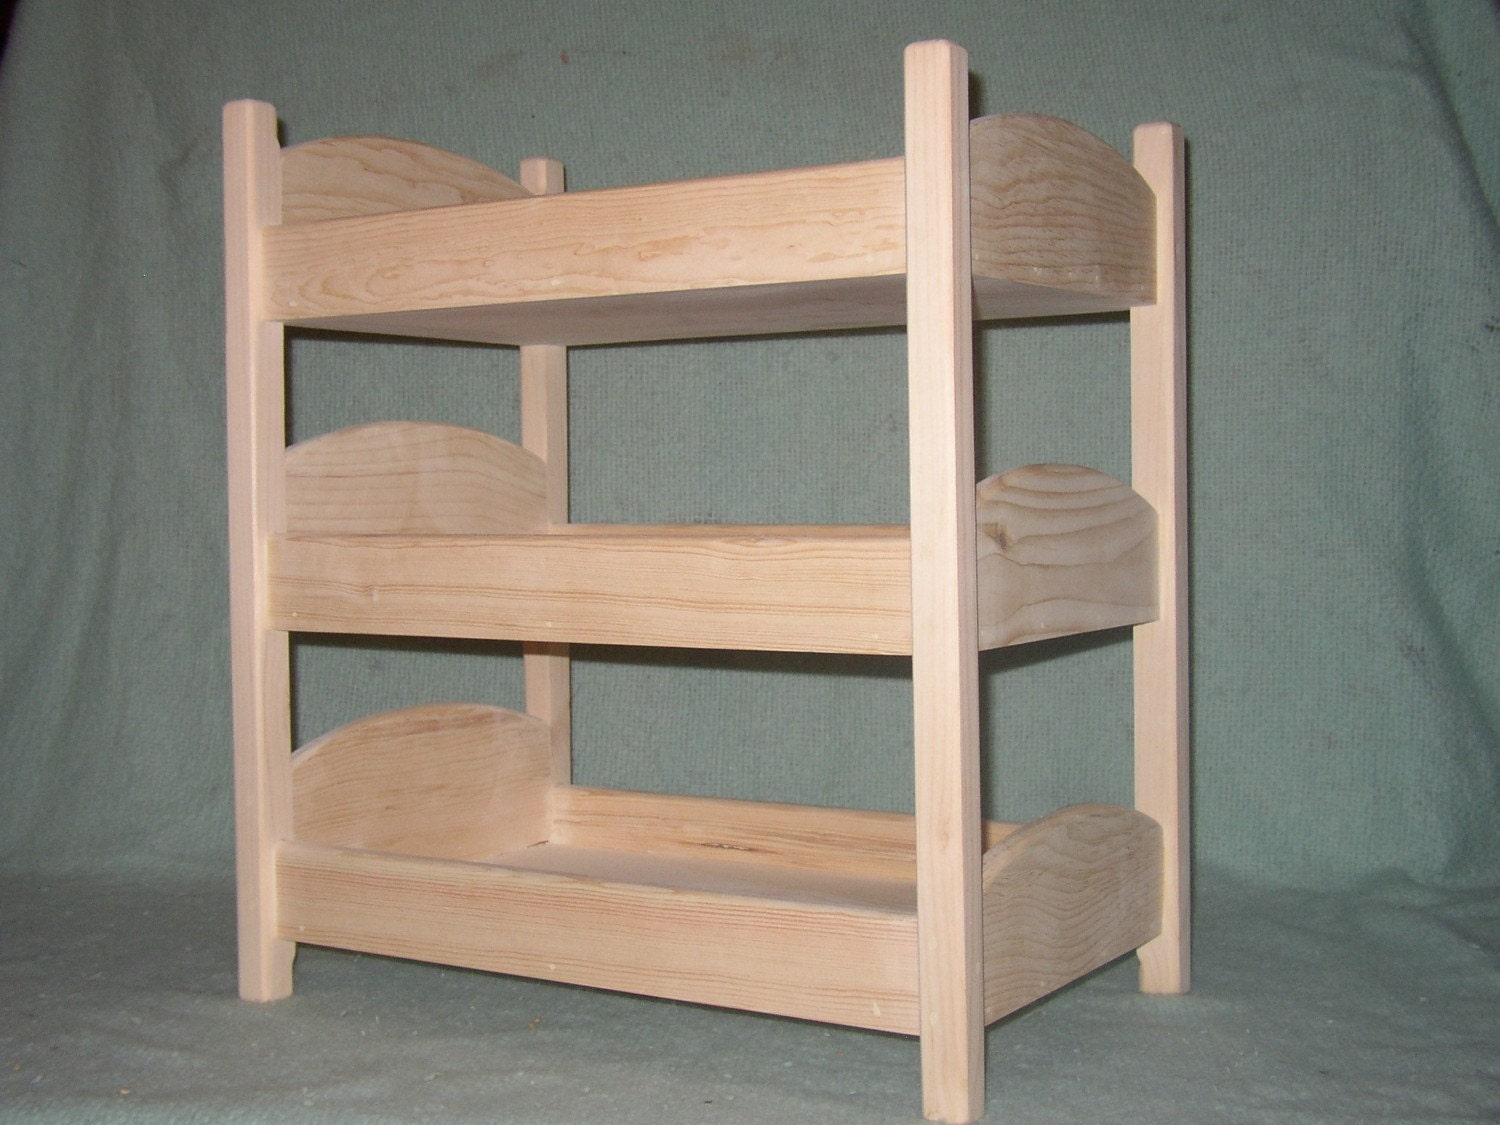 plans for building triple bunk beds